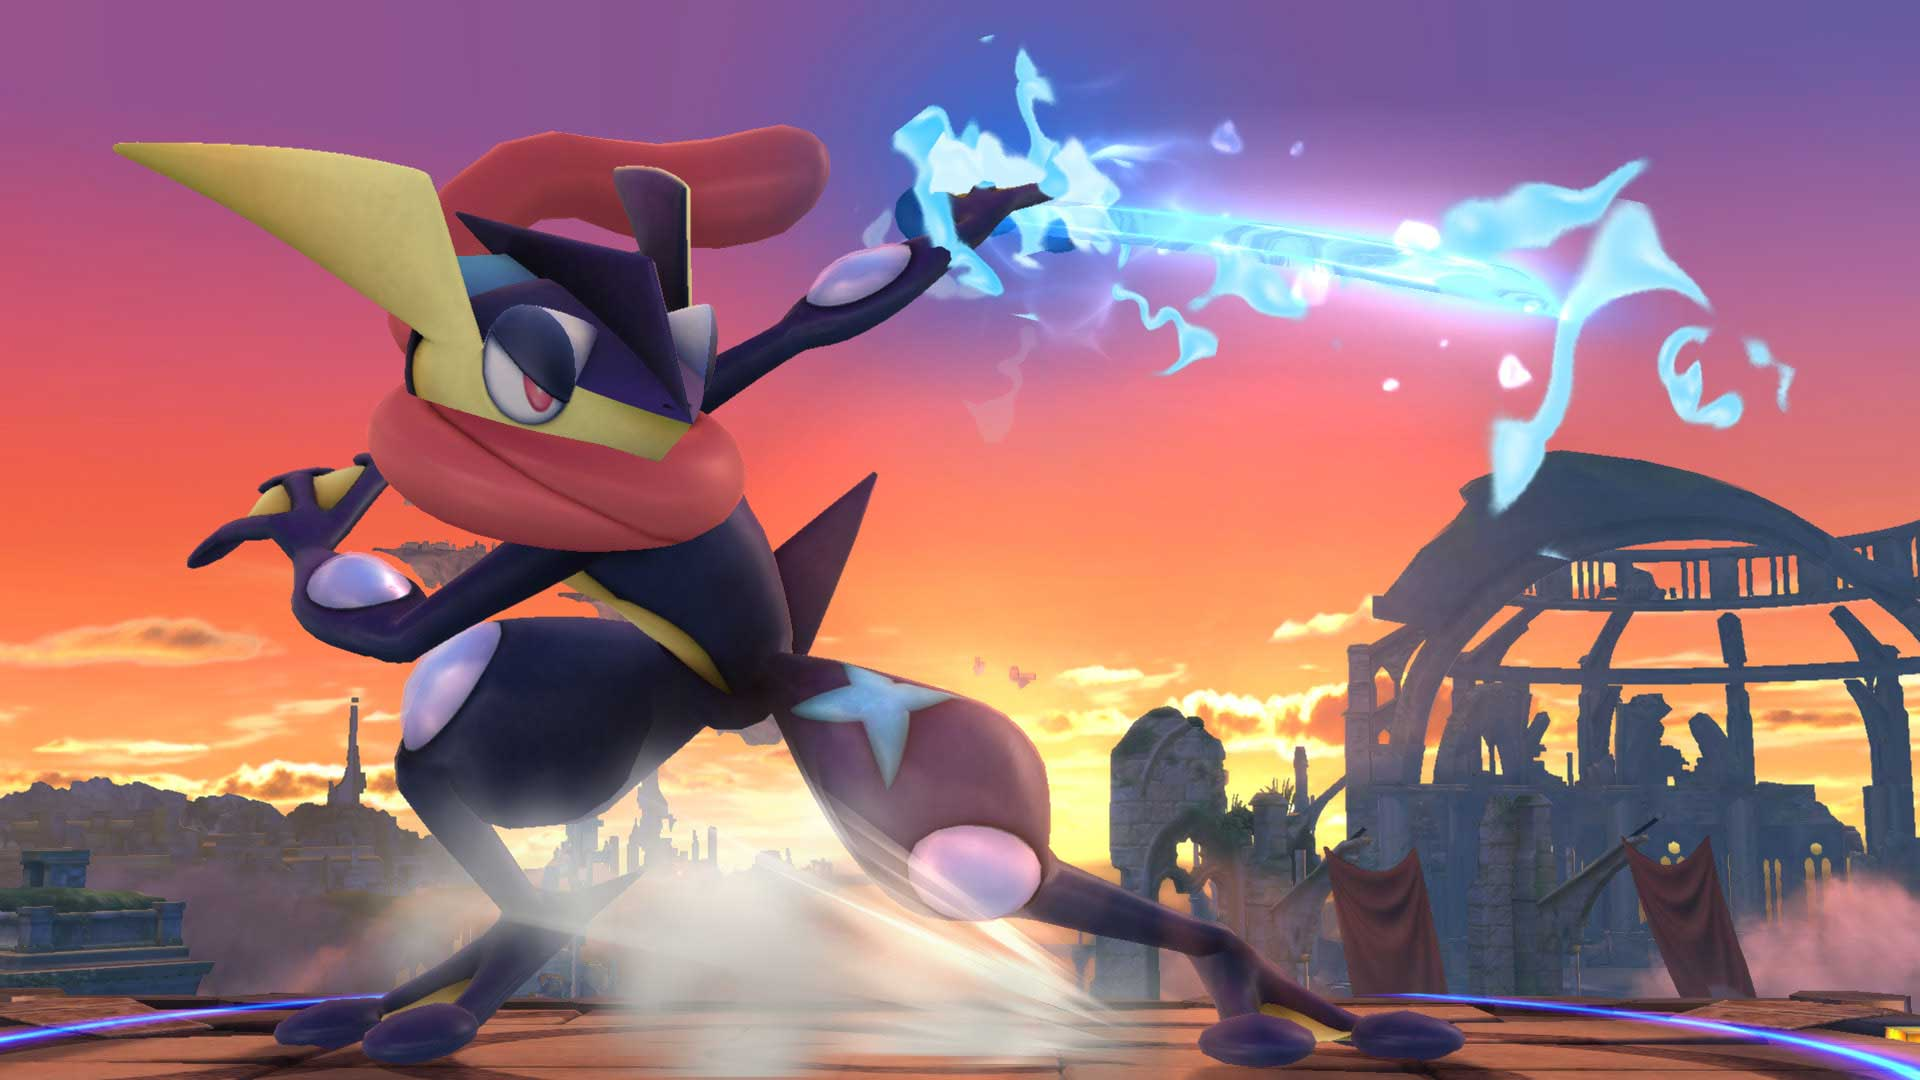 Greninja and Charizard added to Super Smash Bros roster ahead of